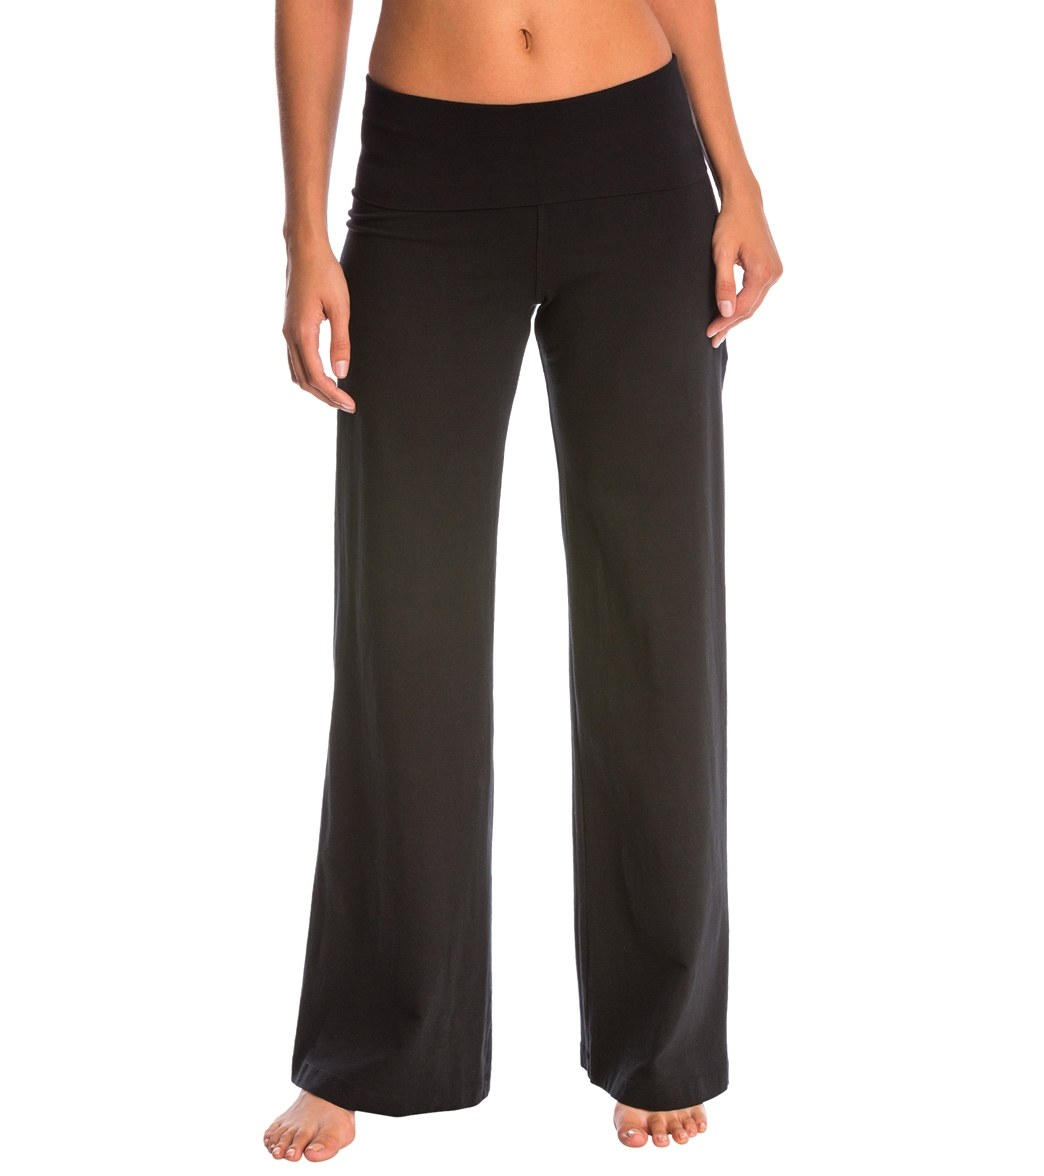 daaf2206c338d Hard Tail Contour Rolldown Wide Leg Yoga Pants at YogaOutlet.com ...